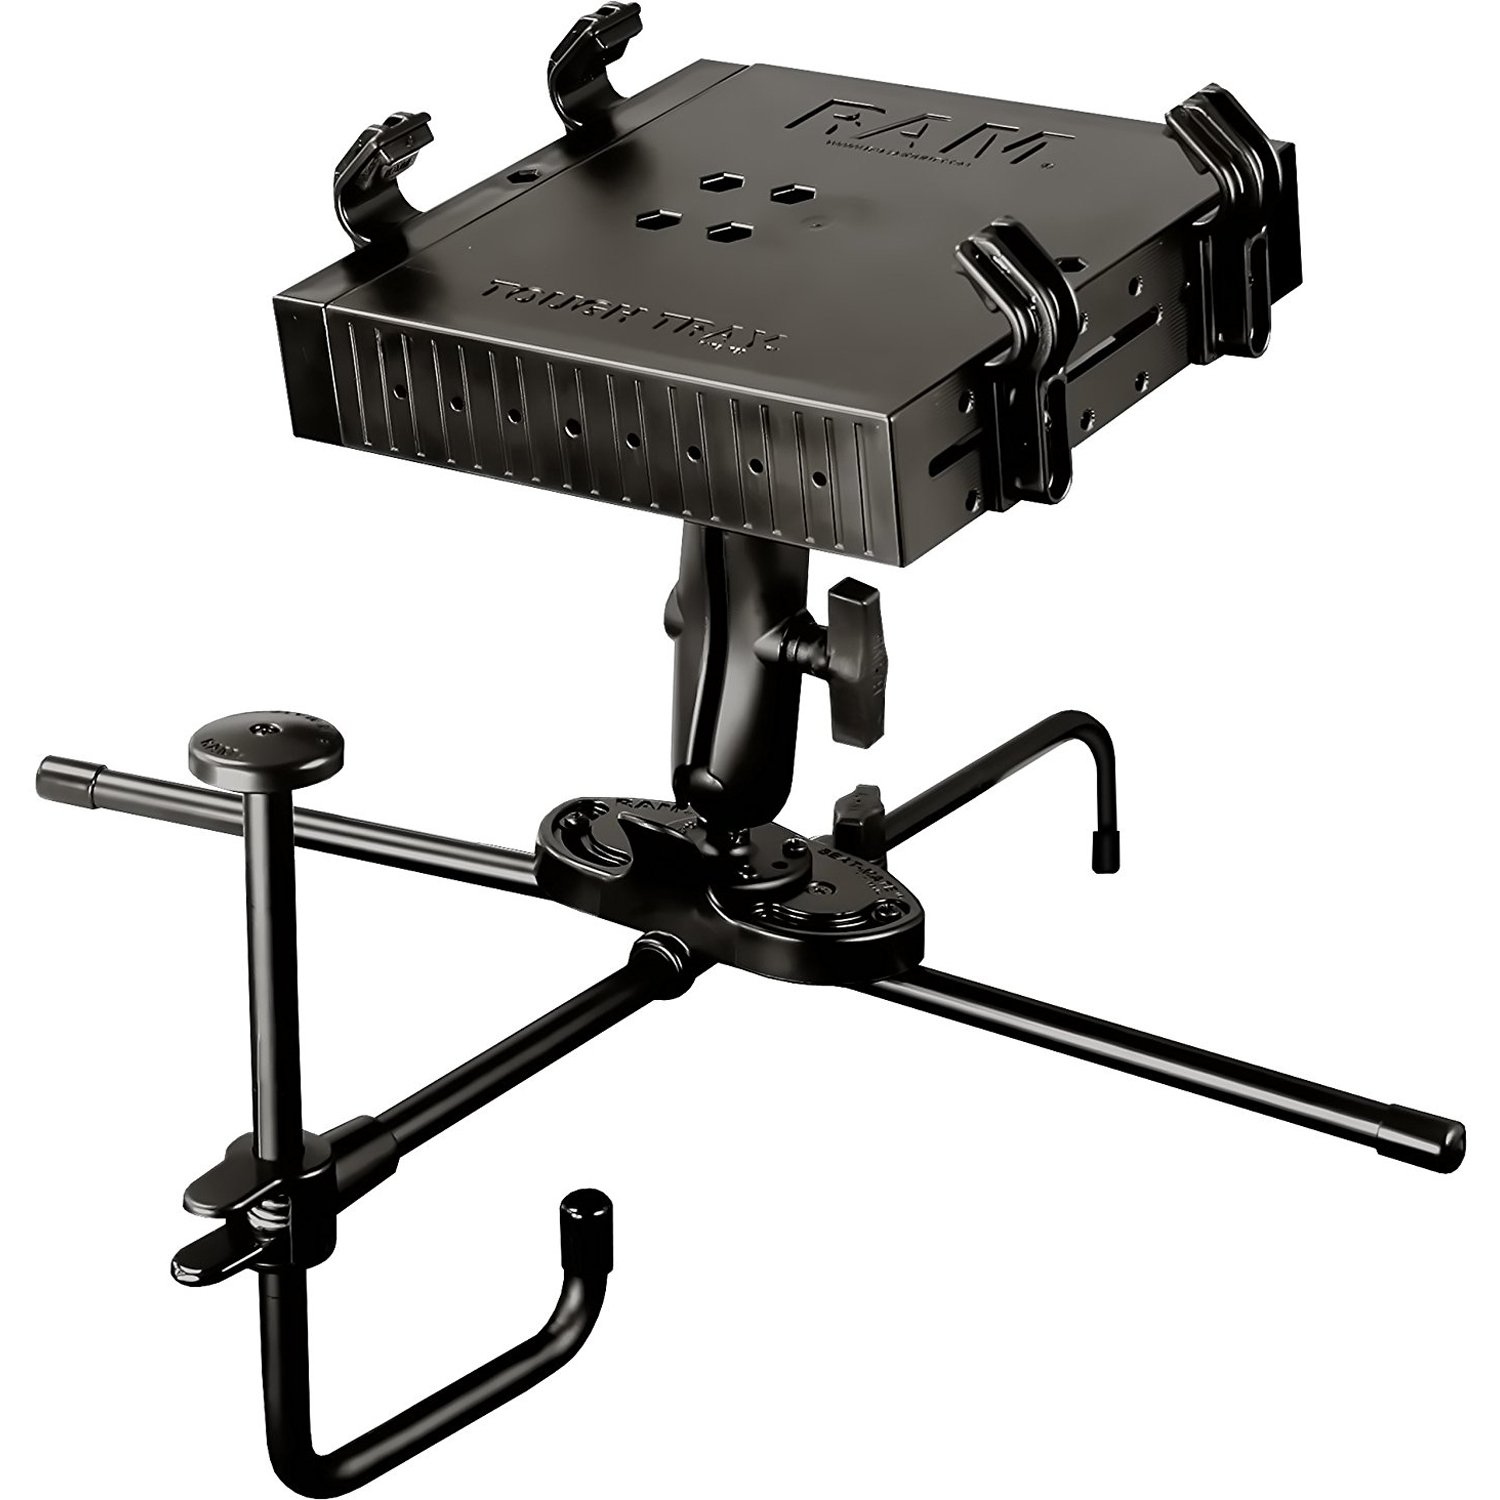 RAM Mounting Systems RAM-SM1-234-3 RAM Universal Seat-Mate Laptop Mounting System National Products Inc.